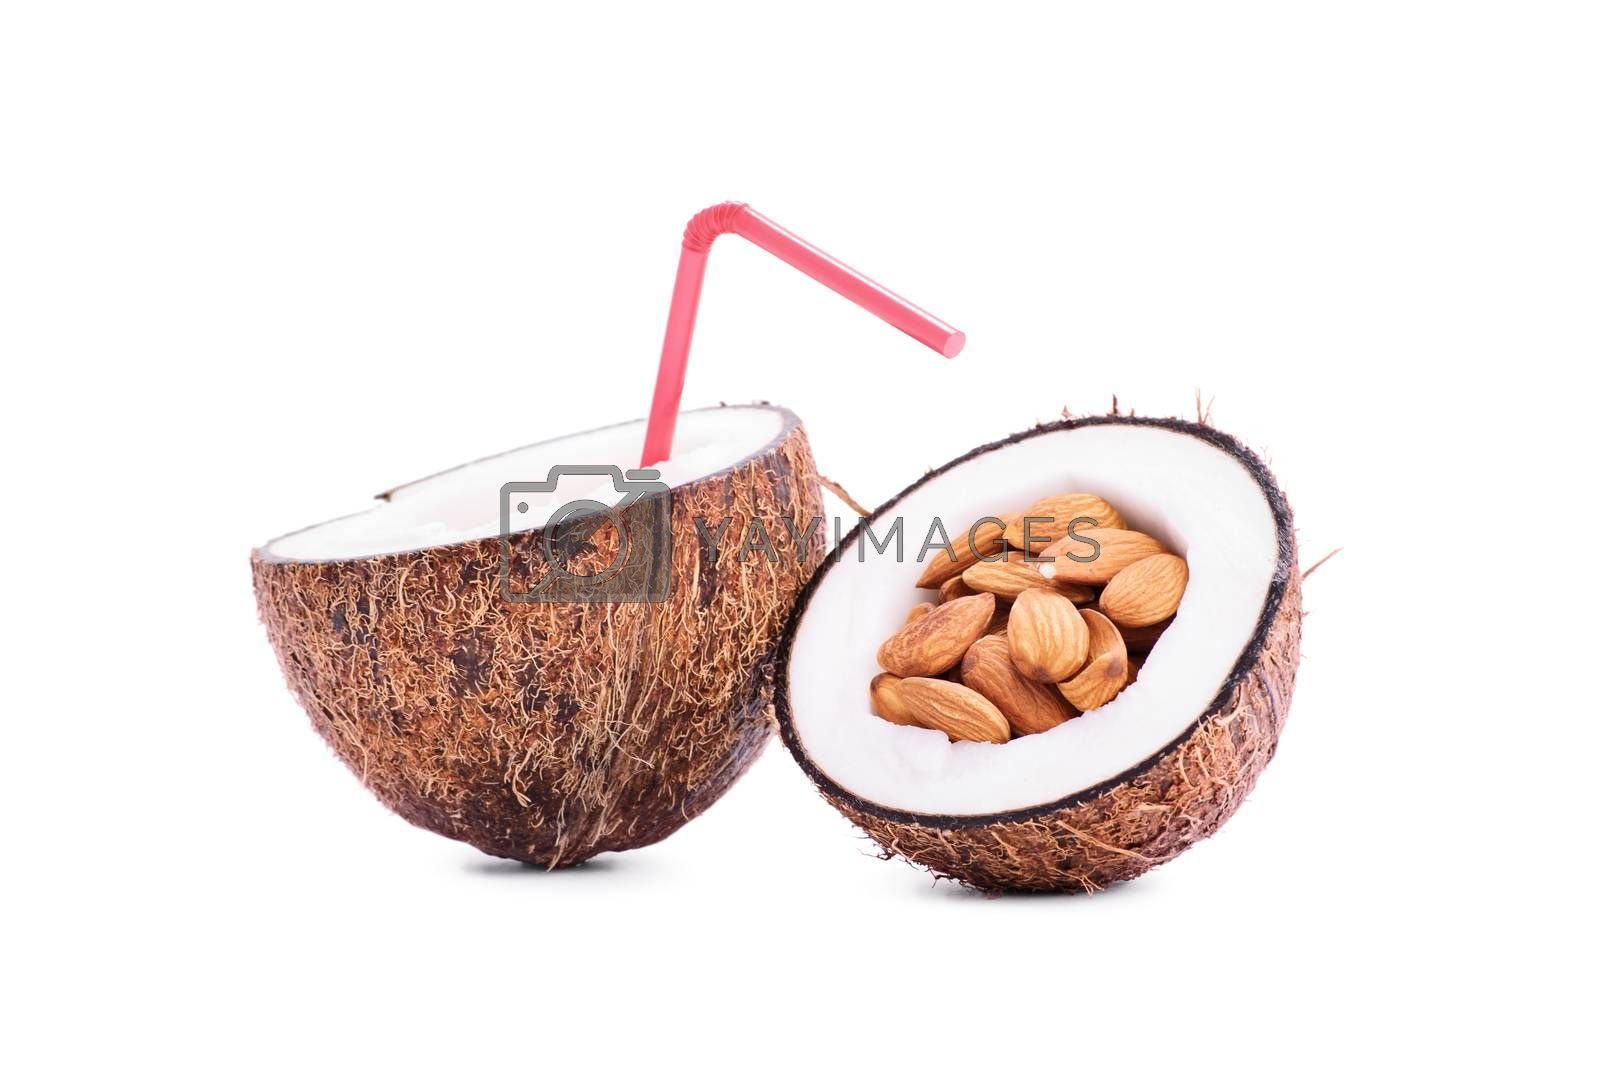 Sliced coconut fruit filled with almonds and coconut milk with a straw, isolated on white background.